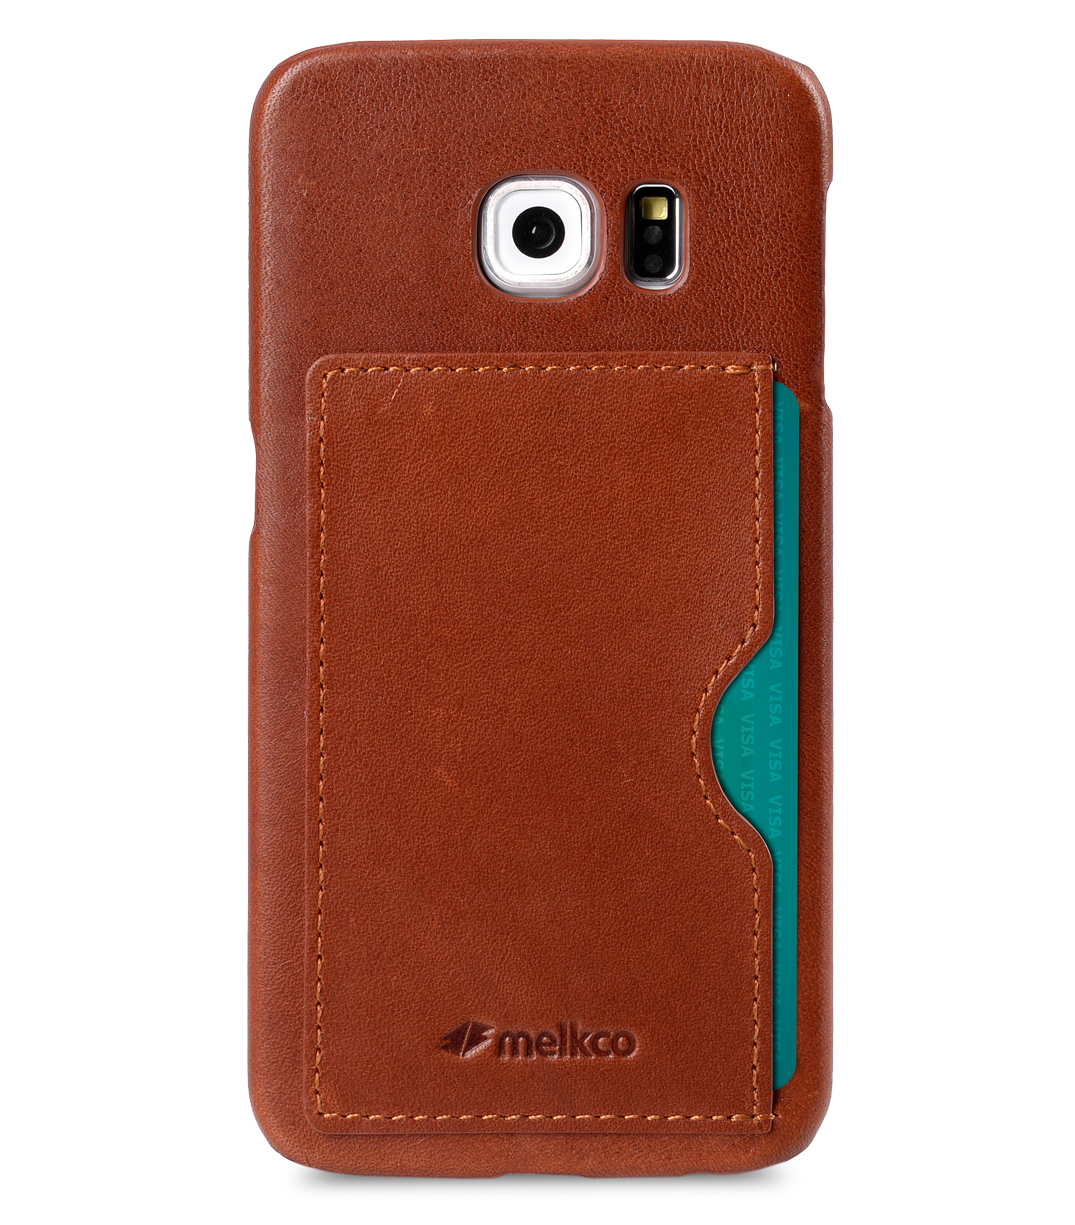 Melkco Mini PU Cases - Snap Cover With Back Card Slot for Samsung Galaxy S6 Edge (Traditional Vintage Brown PU)